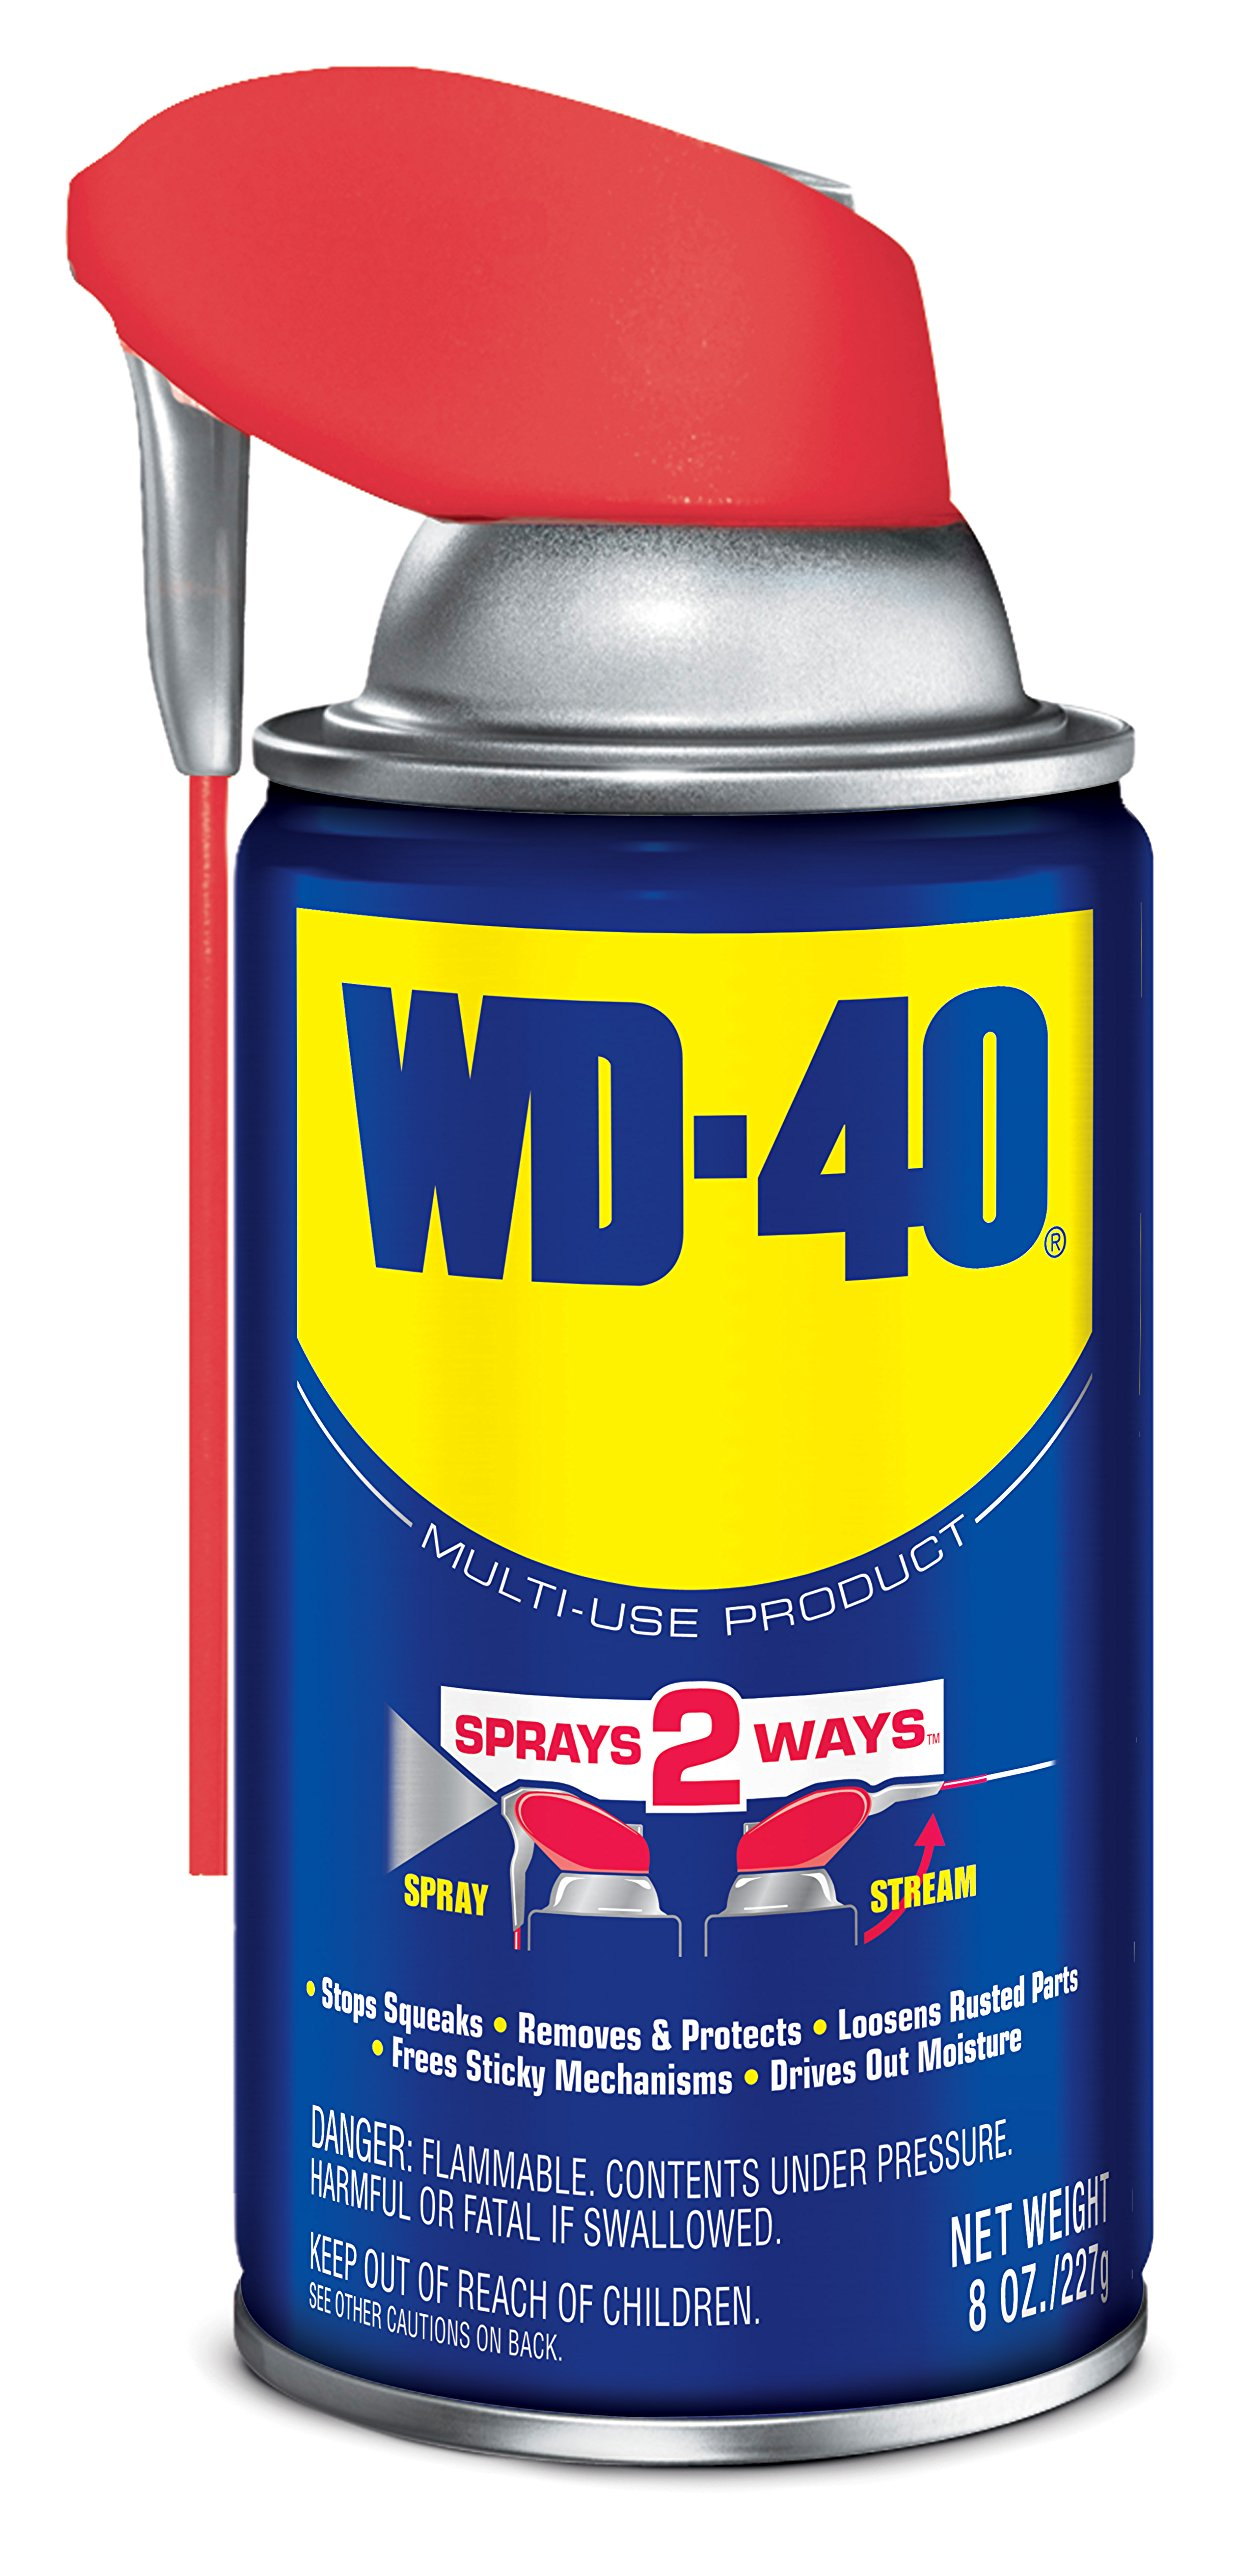 WD-40 Multi-Use Product - Multi-Purpose Lubricant with Smart Straw Spray. 8 oz. (12 Pack) by WD-40